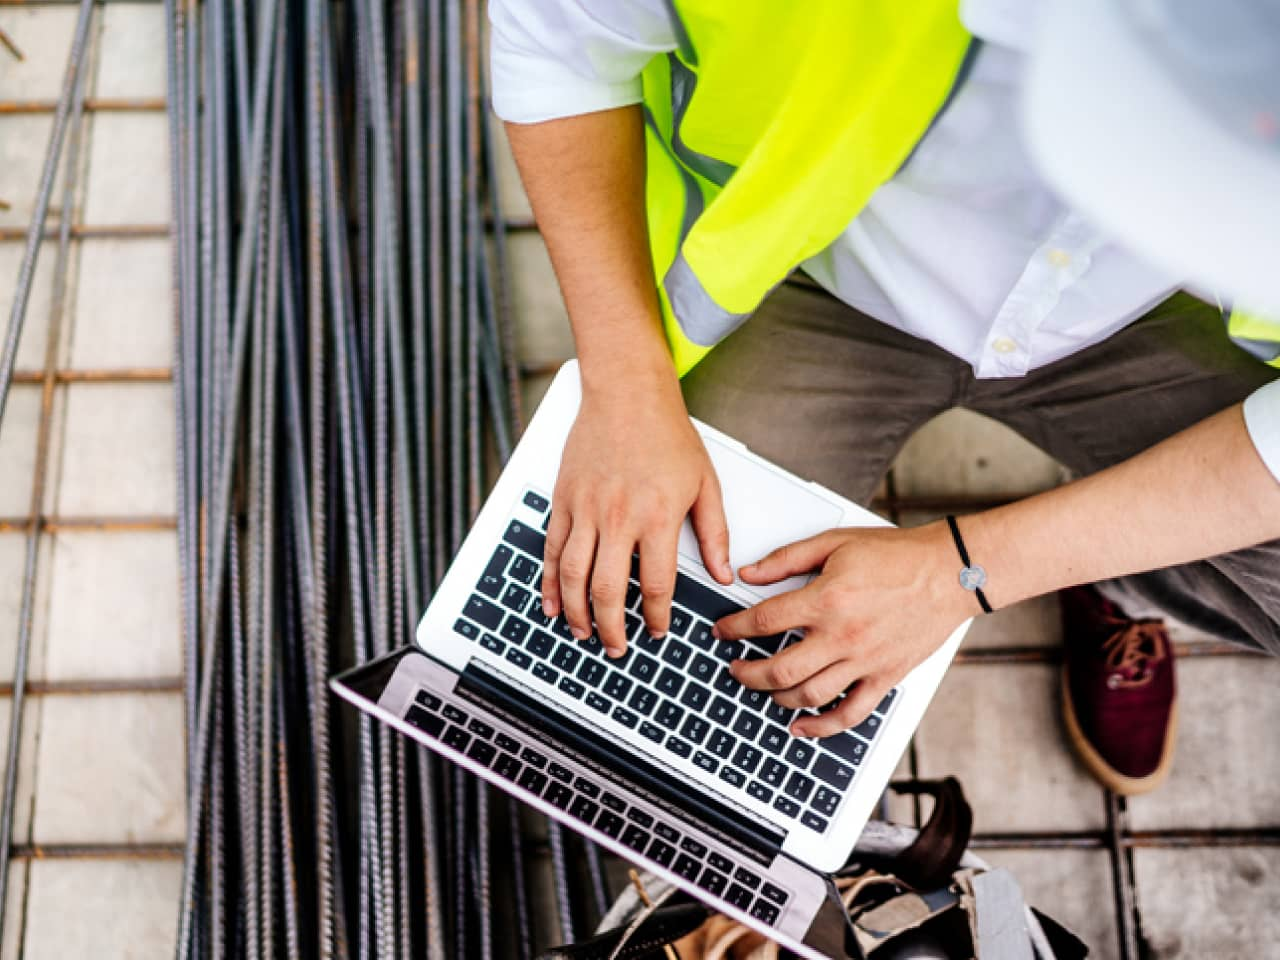 Close up details of engineer working on laptop on construction site.